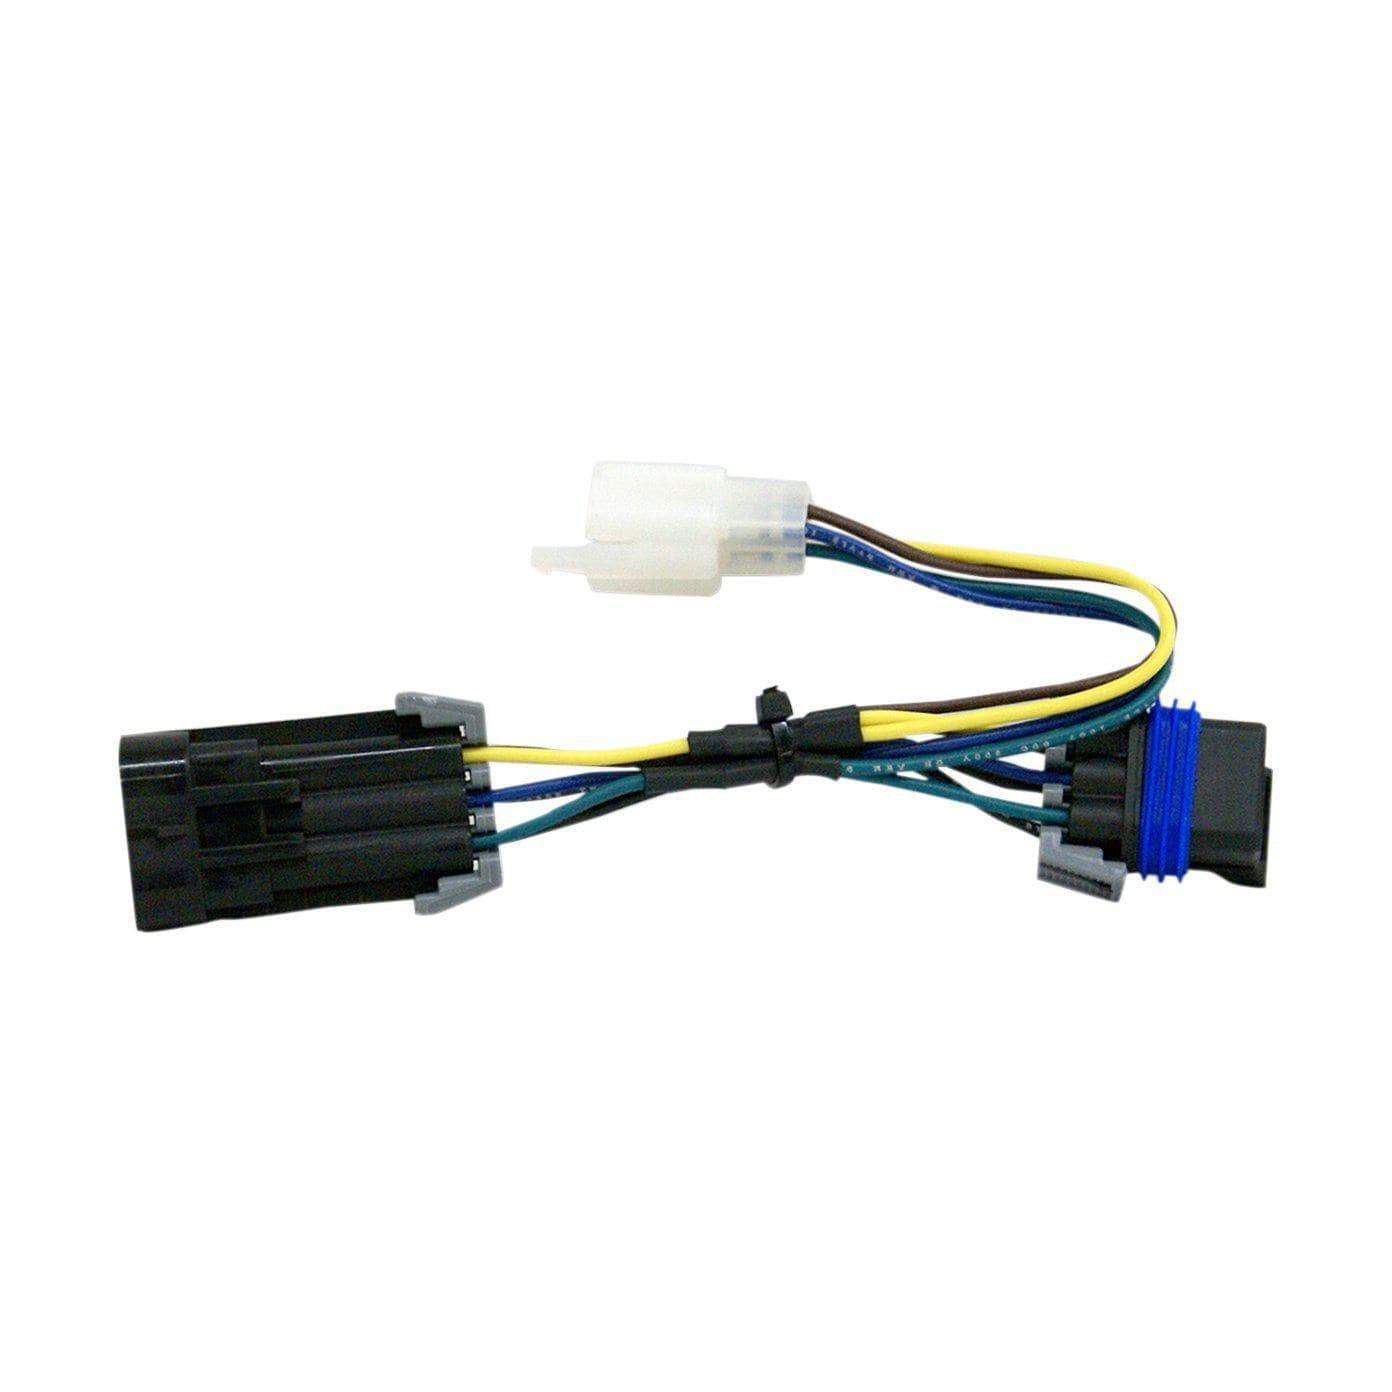 Trailer Wiring Harness 6 pin Molex by Rivco – WitchdoctorsWitchdoctors